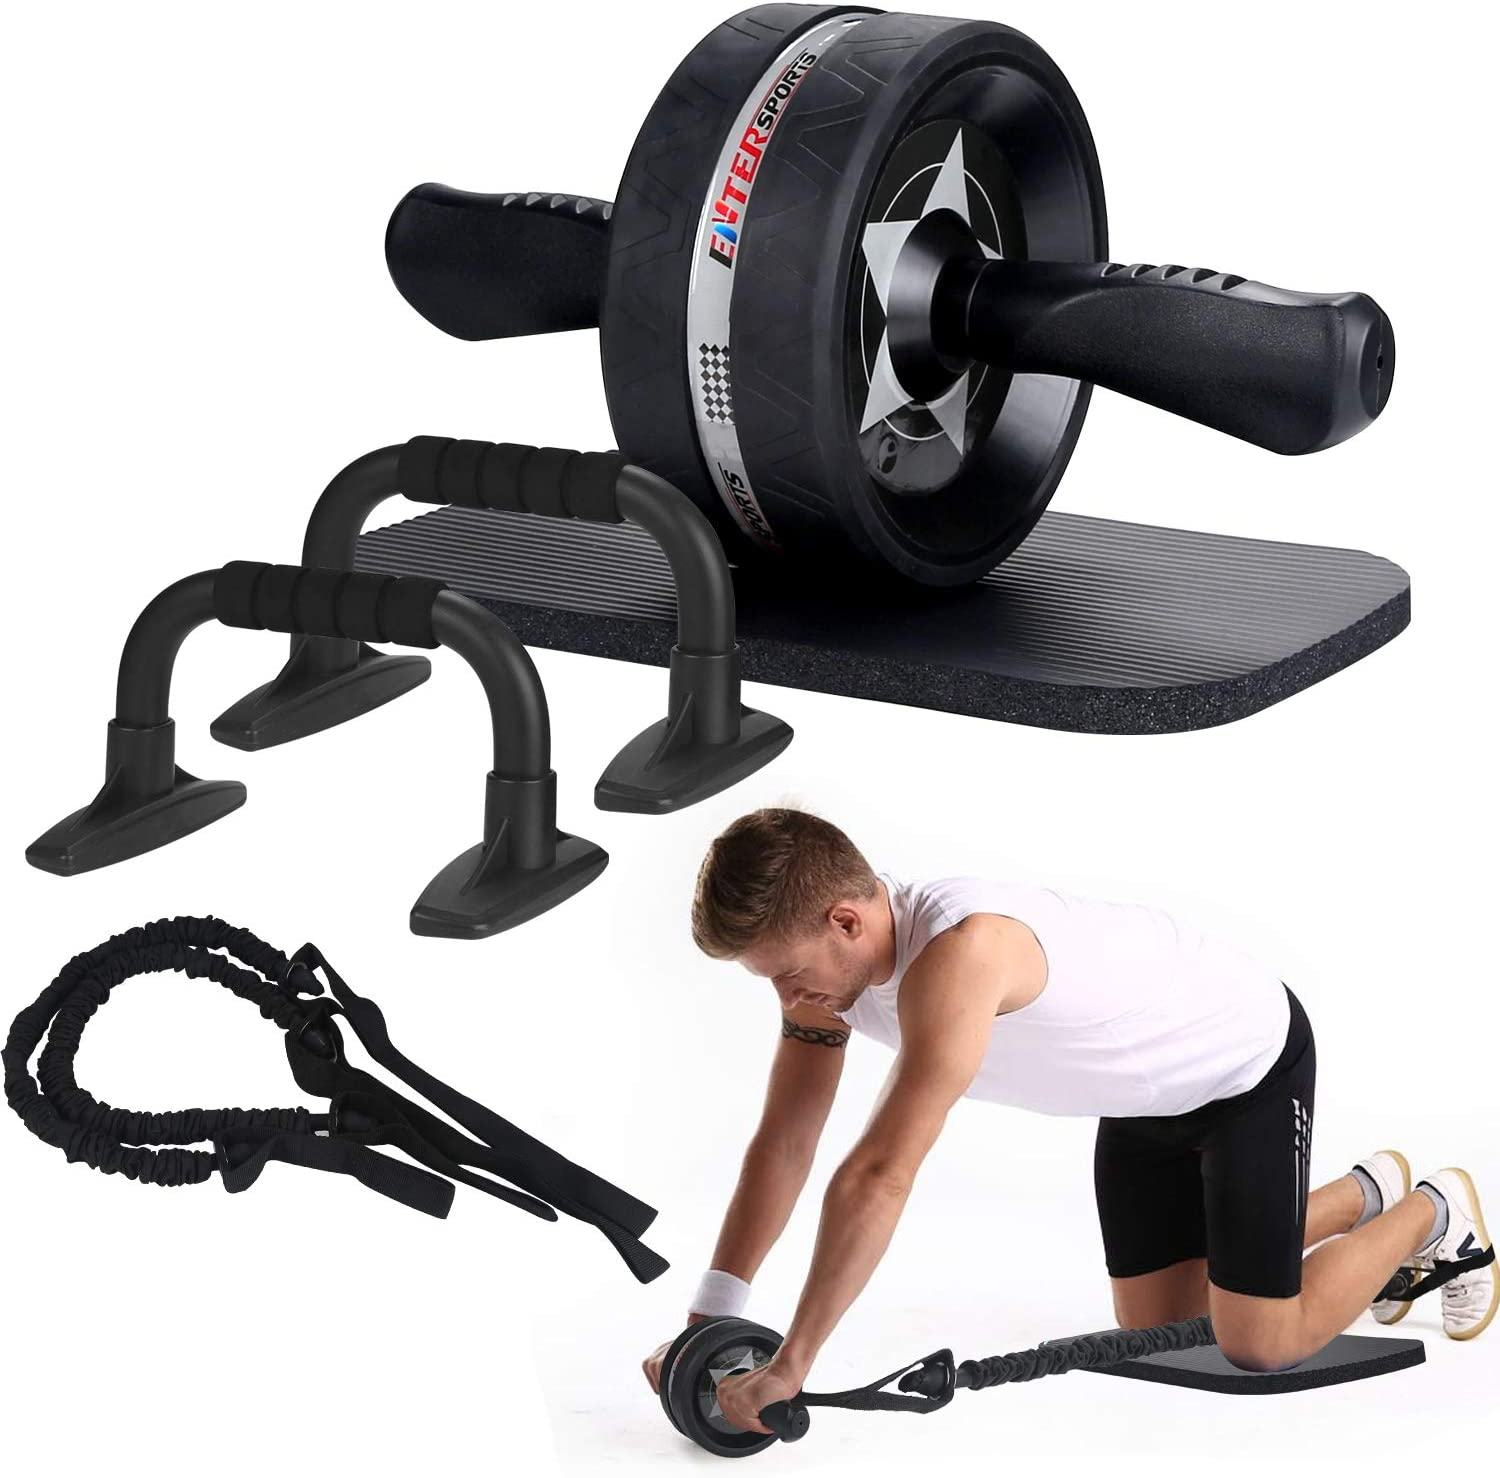 Review of EnterSports Ab Roller Wheel, 6-in-1 Ab Roller Kit with Knee Pad